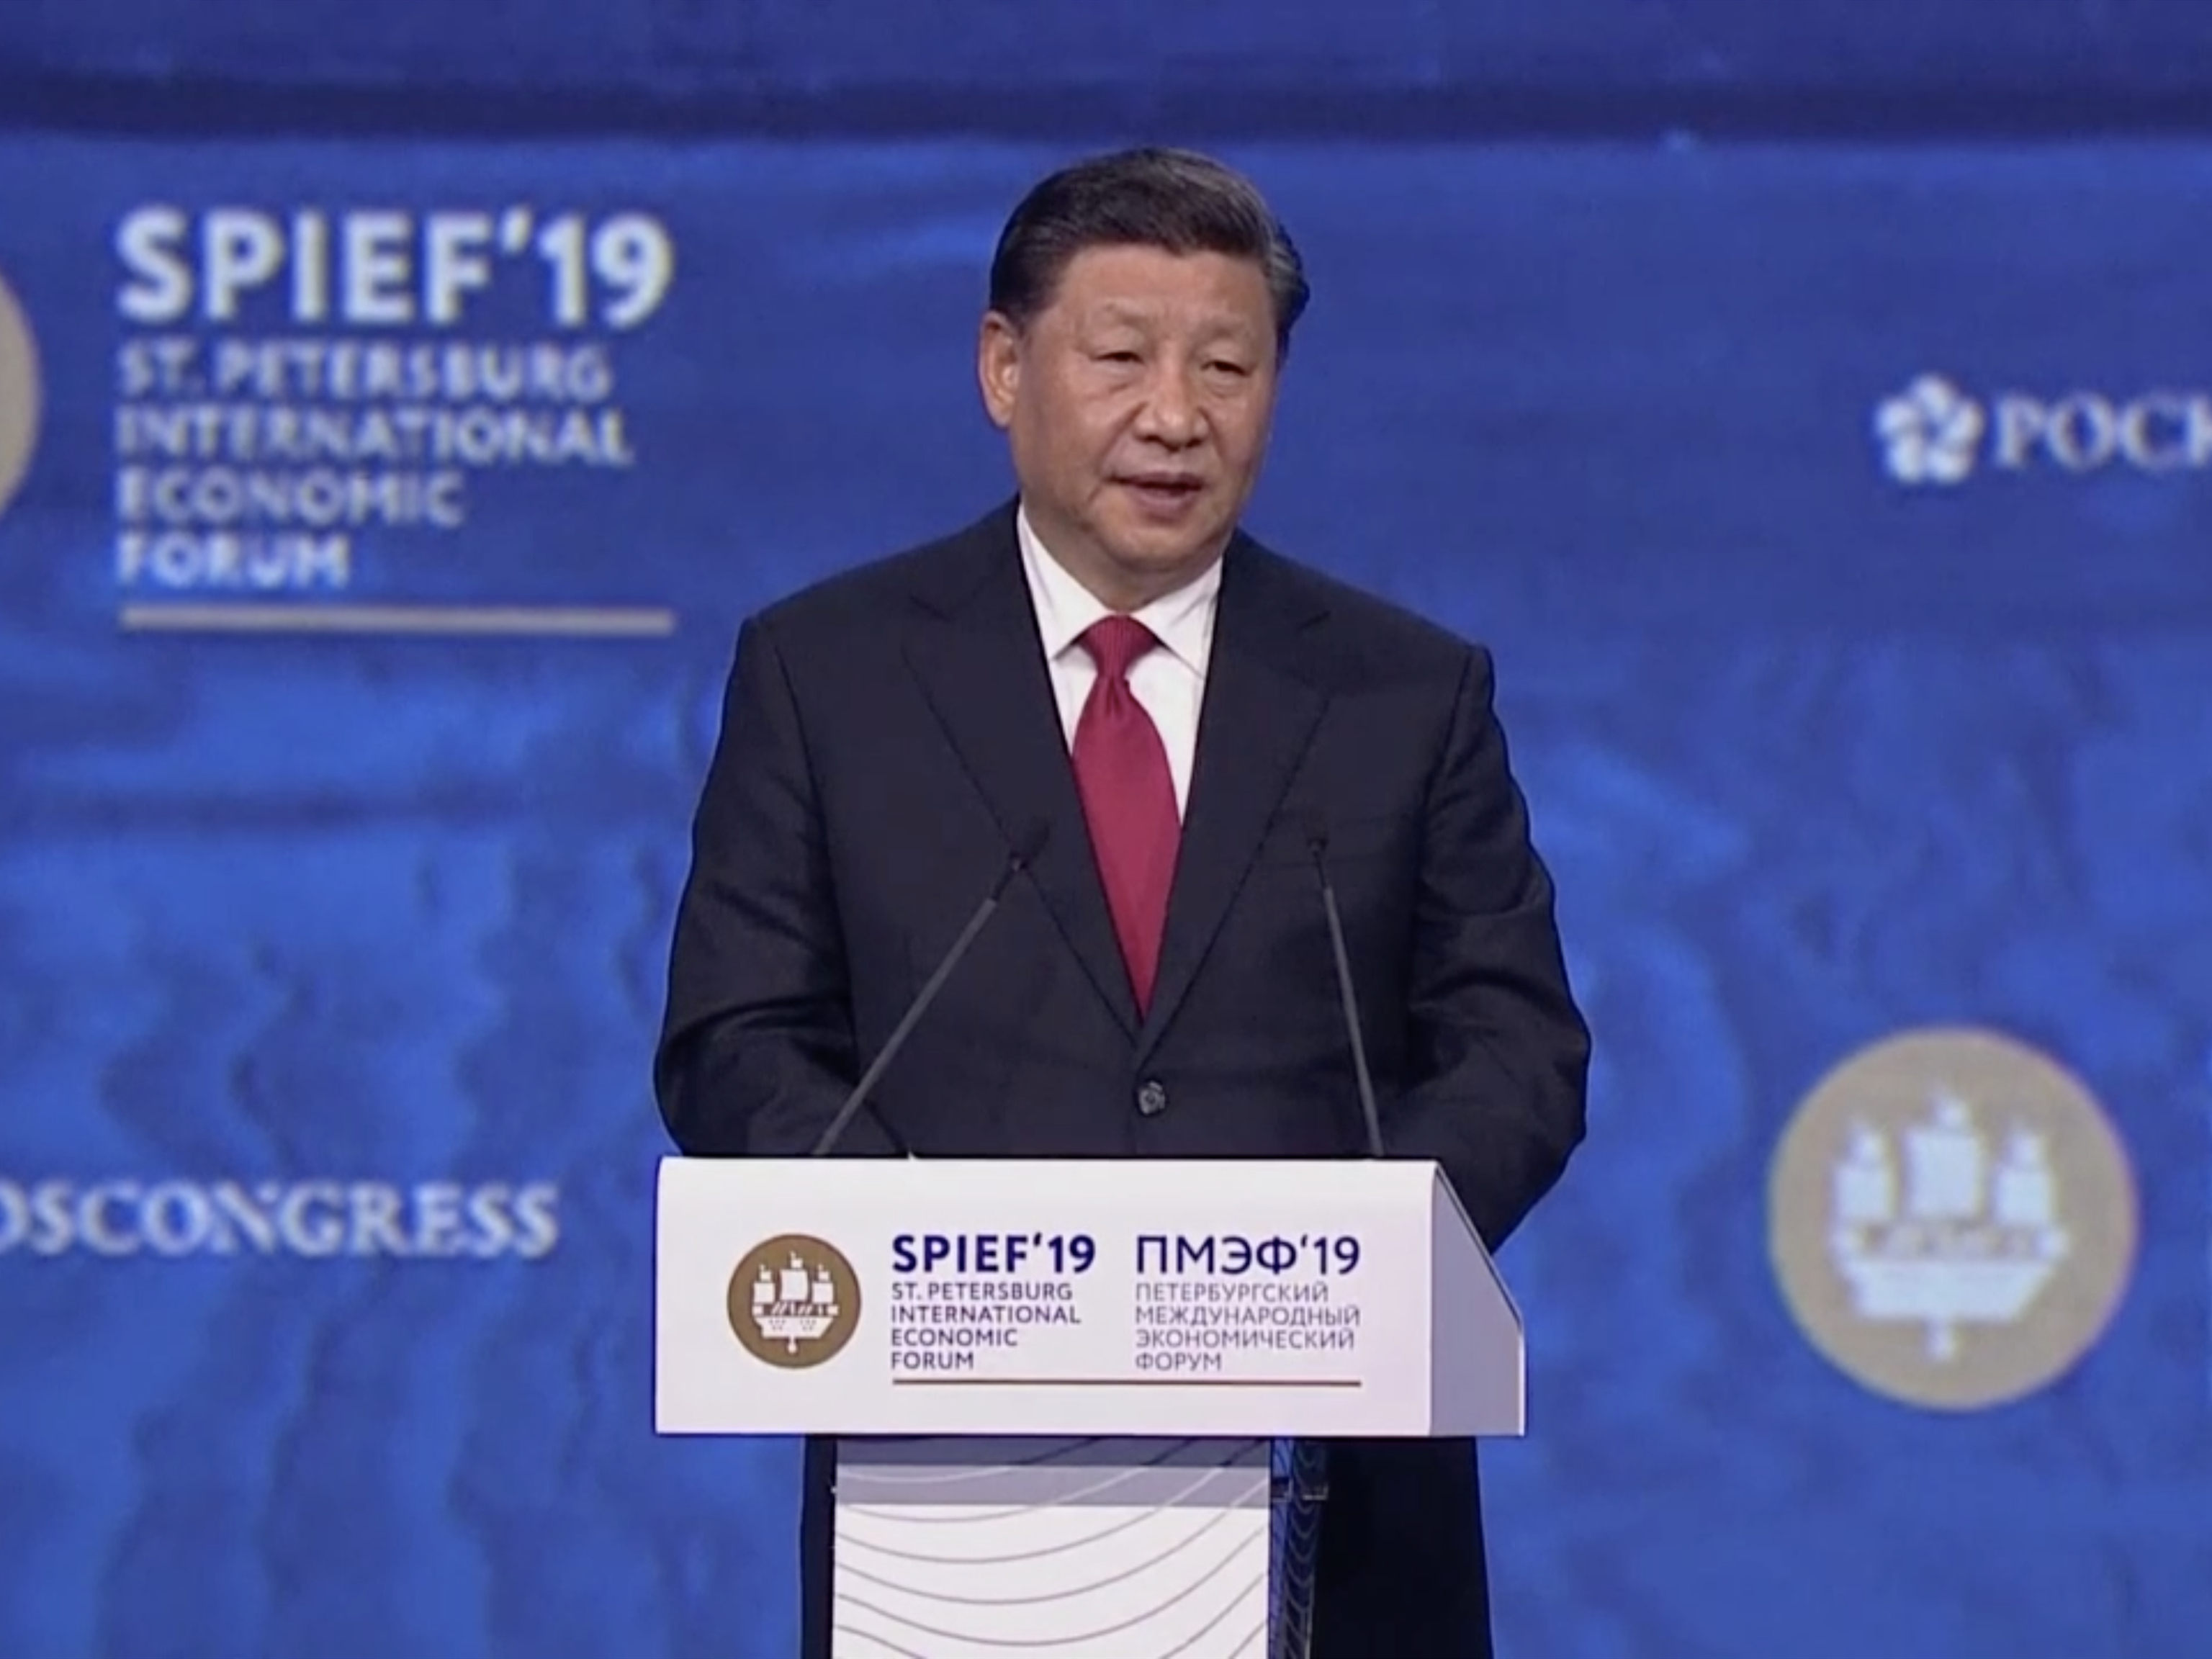 Xi addresses SPIEF in Russia for 1st time